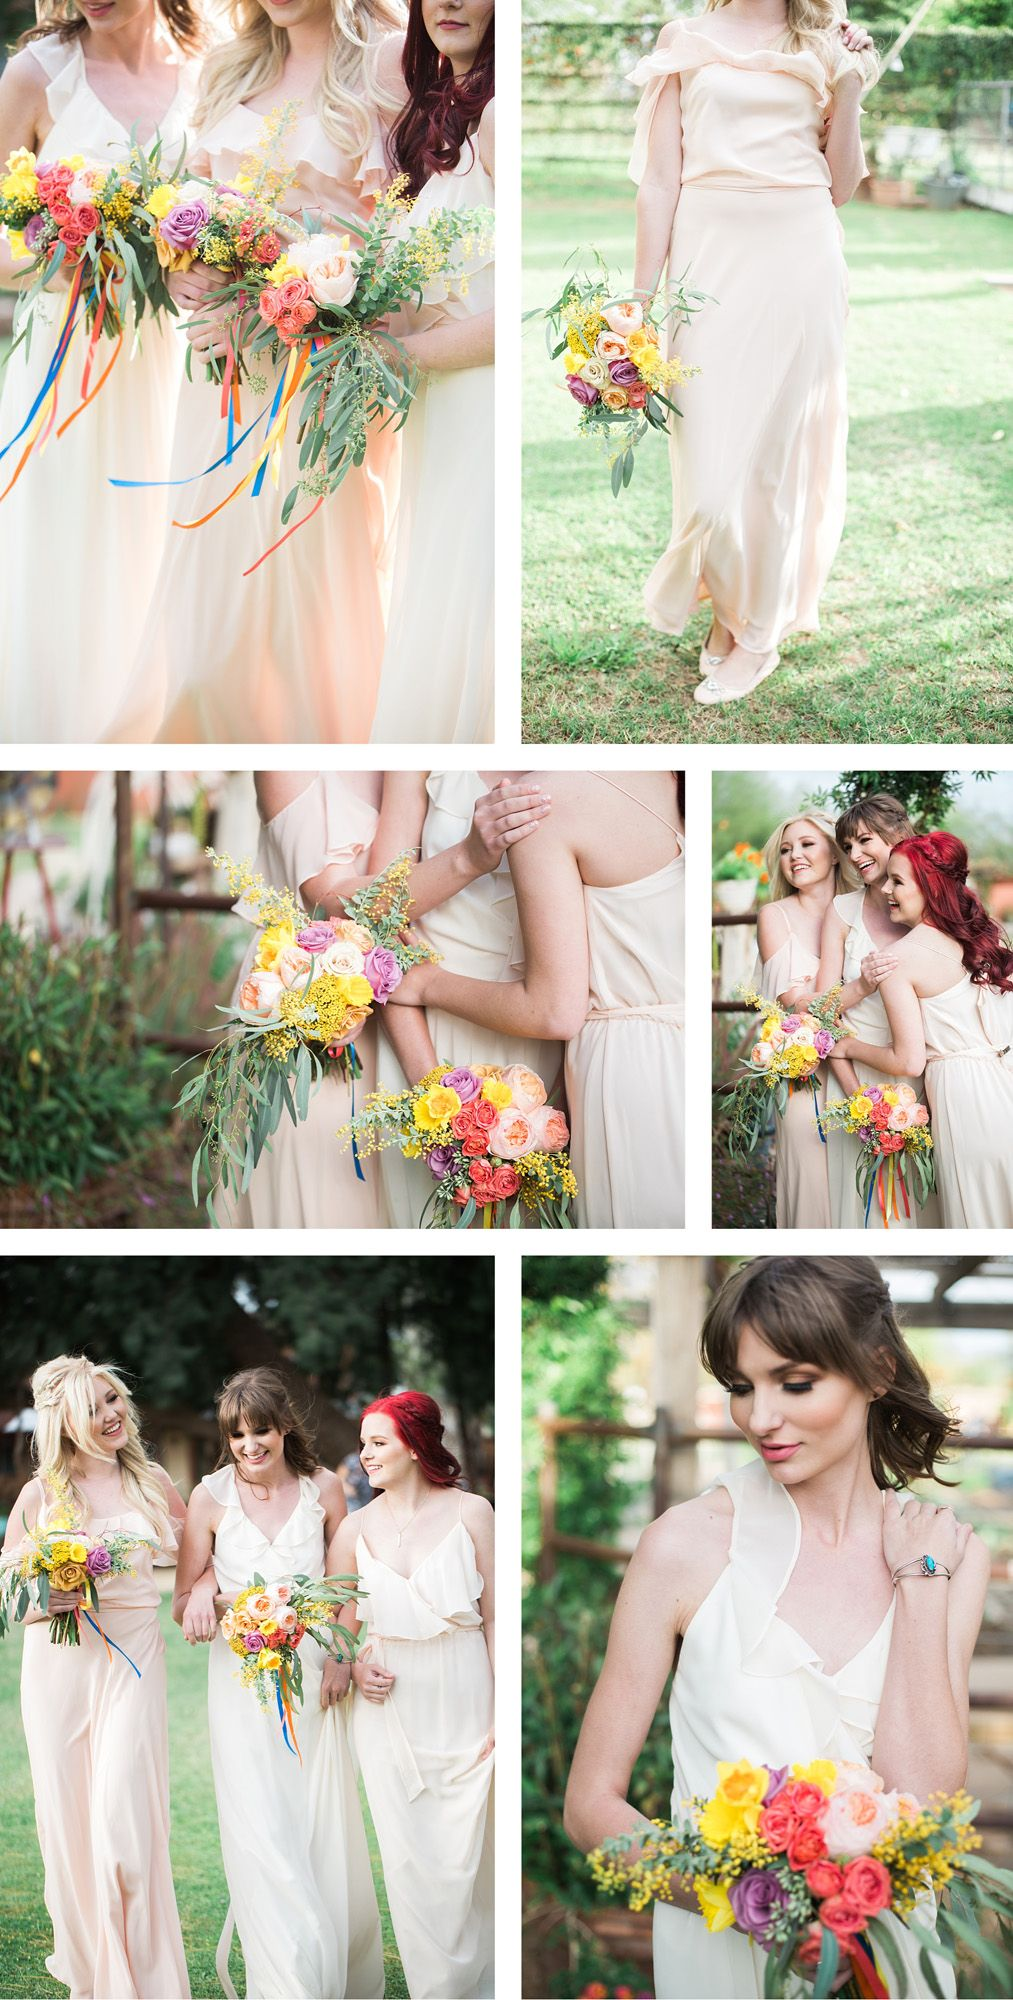 Boho mexican fiesta inspired wedding the creative team venue and boho mexican fiesta inspired wedding the creative team venue and furniture rentalstremaine ranch floral design bloom and blueprint photography denise malvernweather Gallery